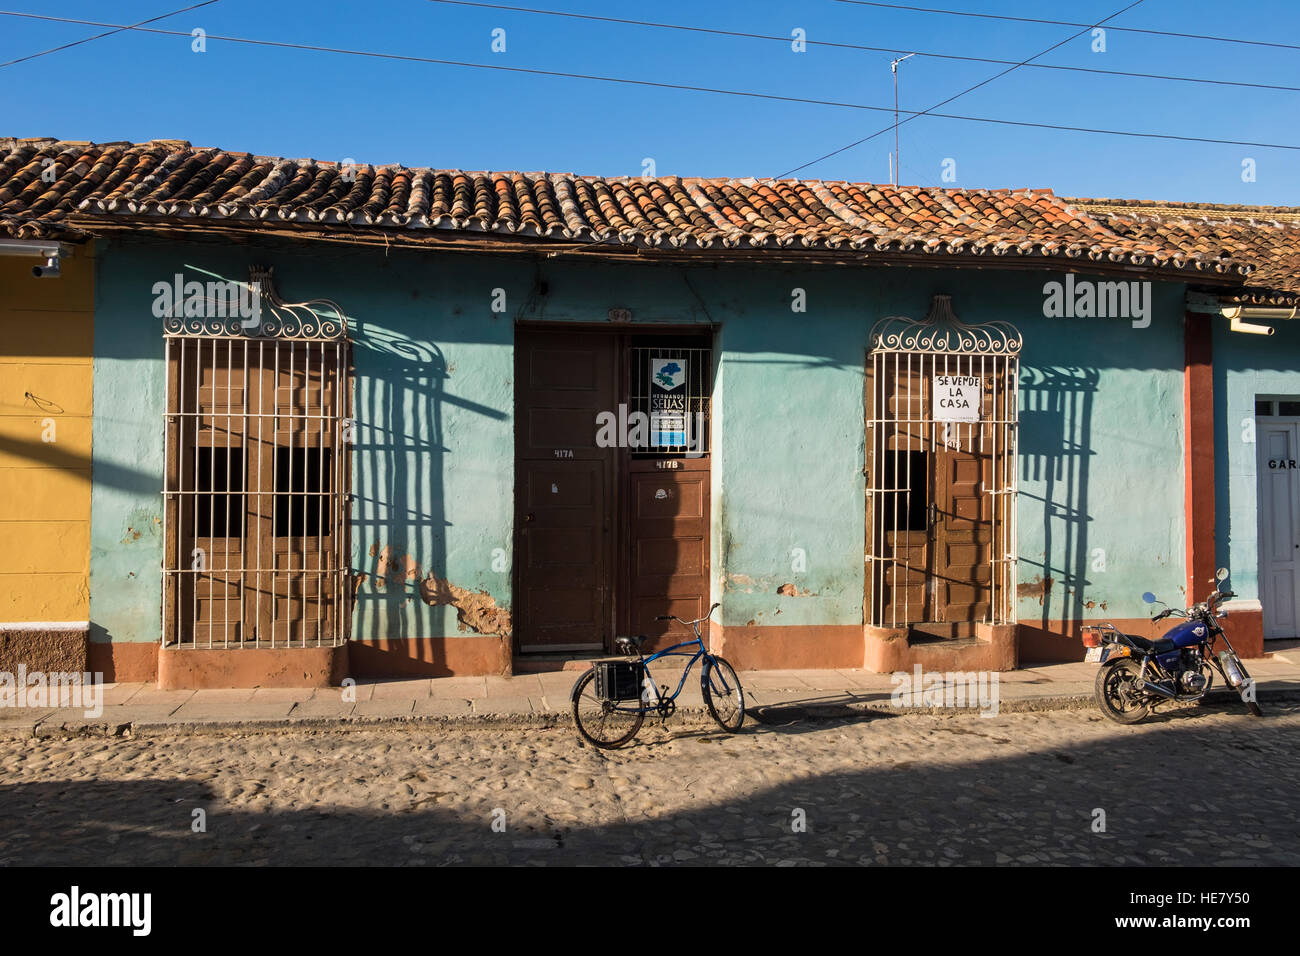 House for sale with traditional barred windows, Trinidad, Cuba - Stock Image